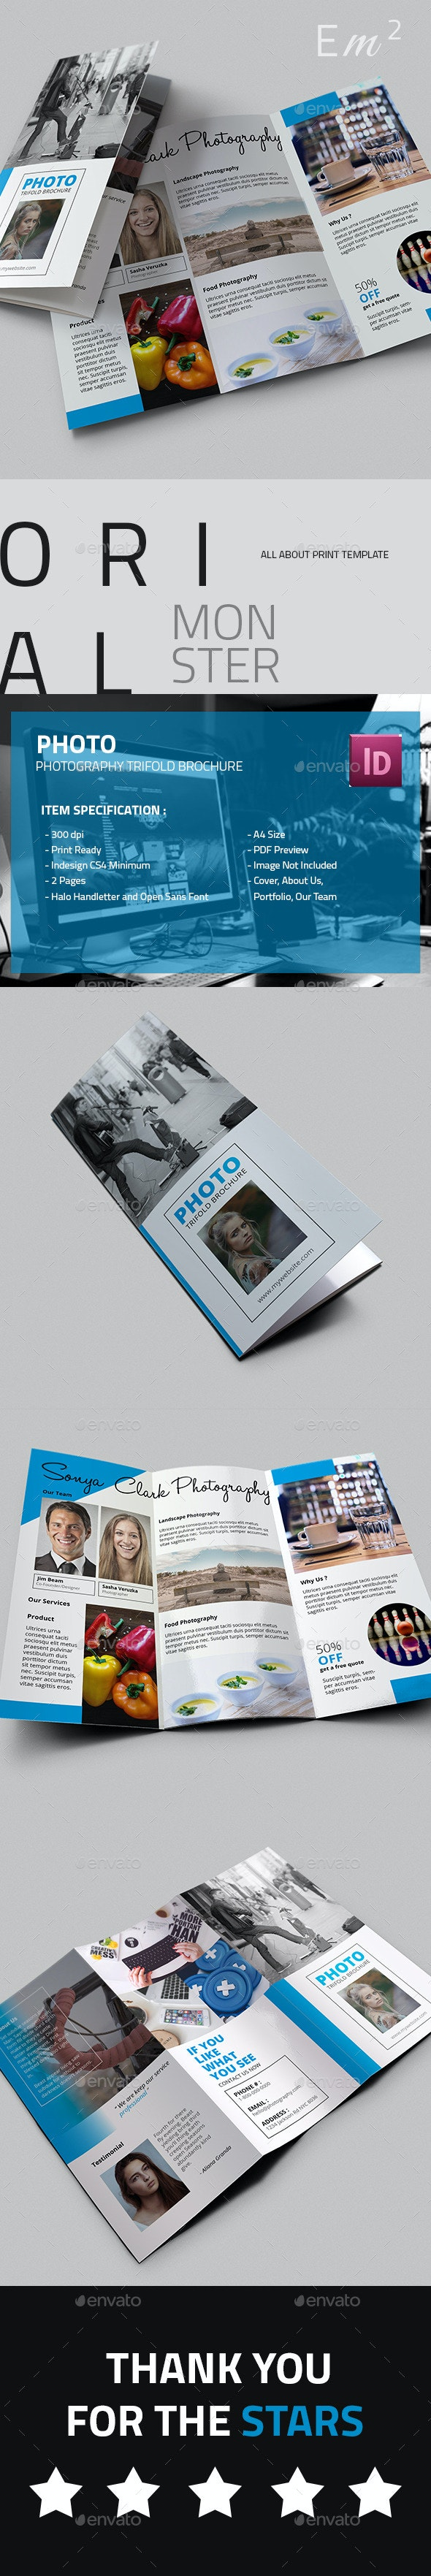 Photo - Photography Trifold Brochure - Corporate Brochures